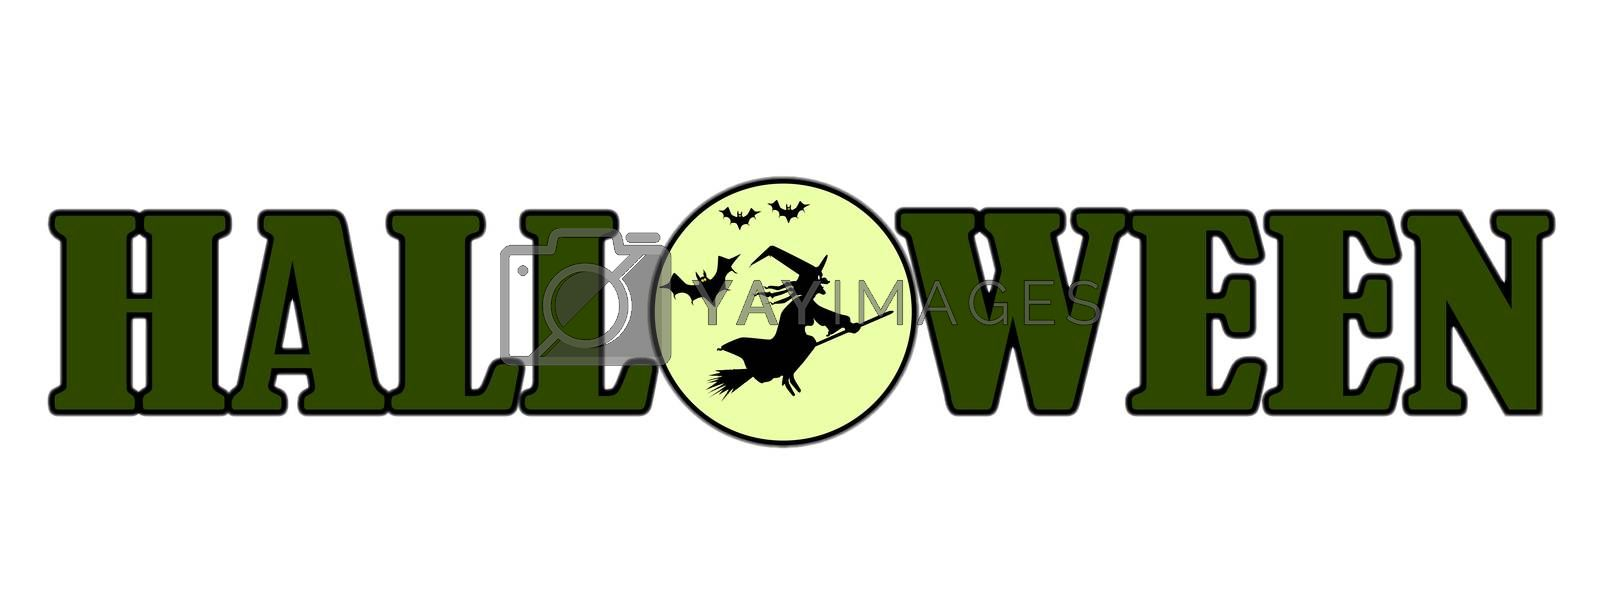 A witch and her bats flying across the full moon with the text HALLOWEEN using the moon as the middle letter